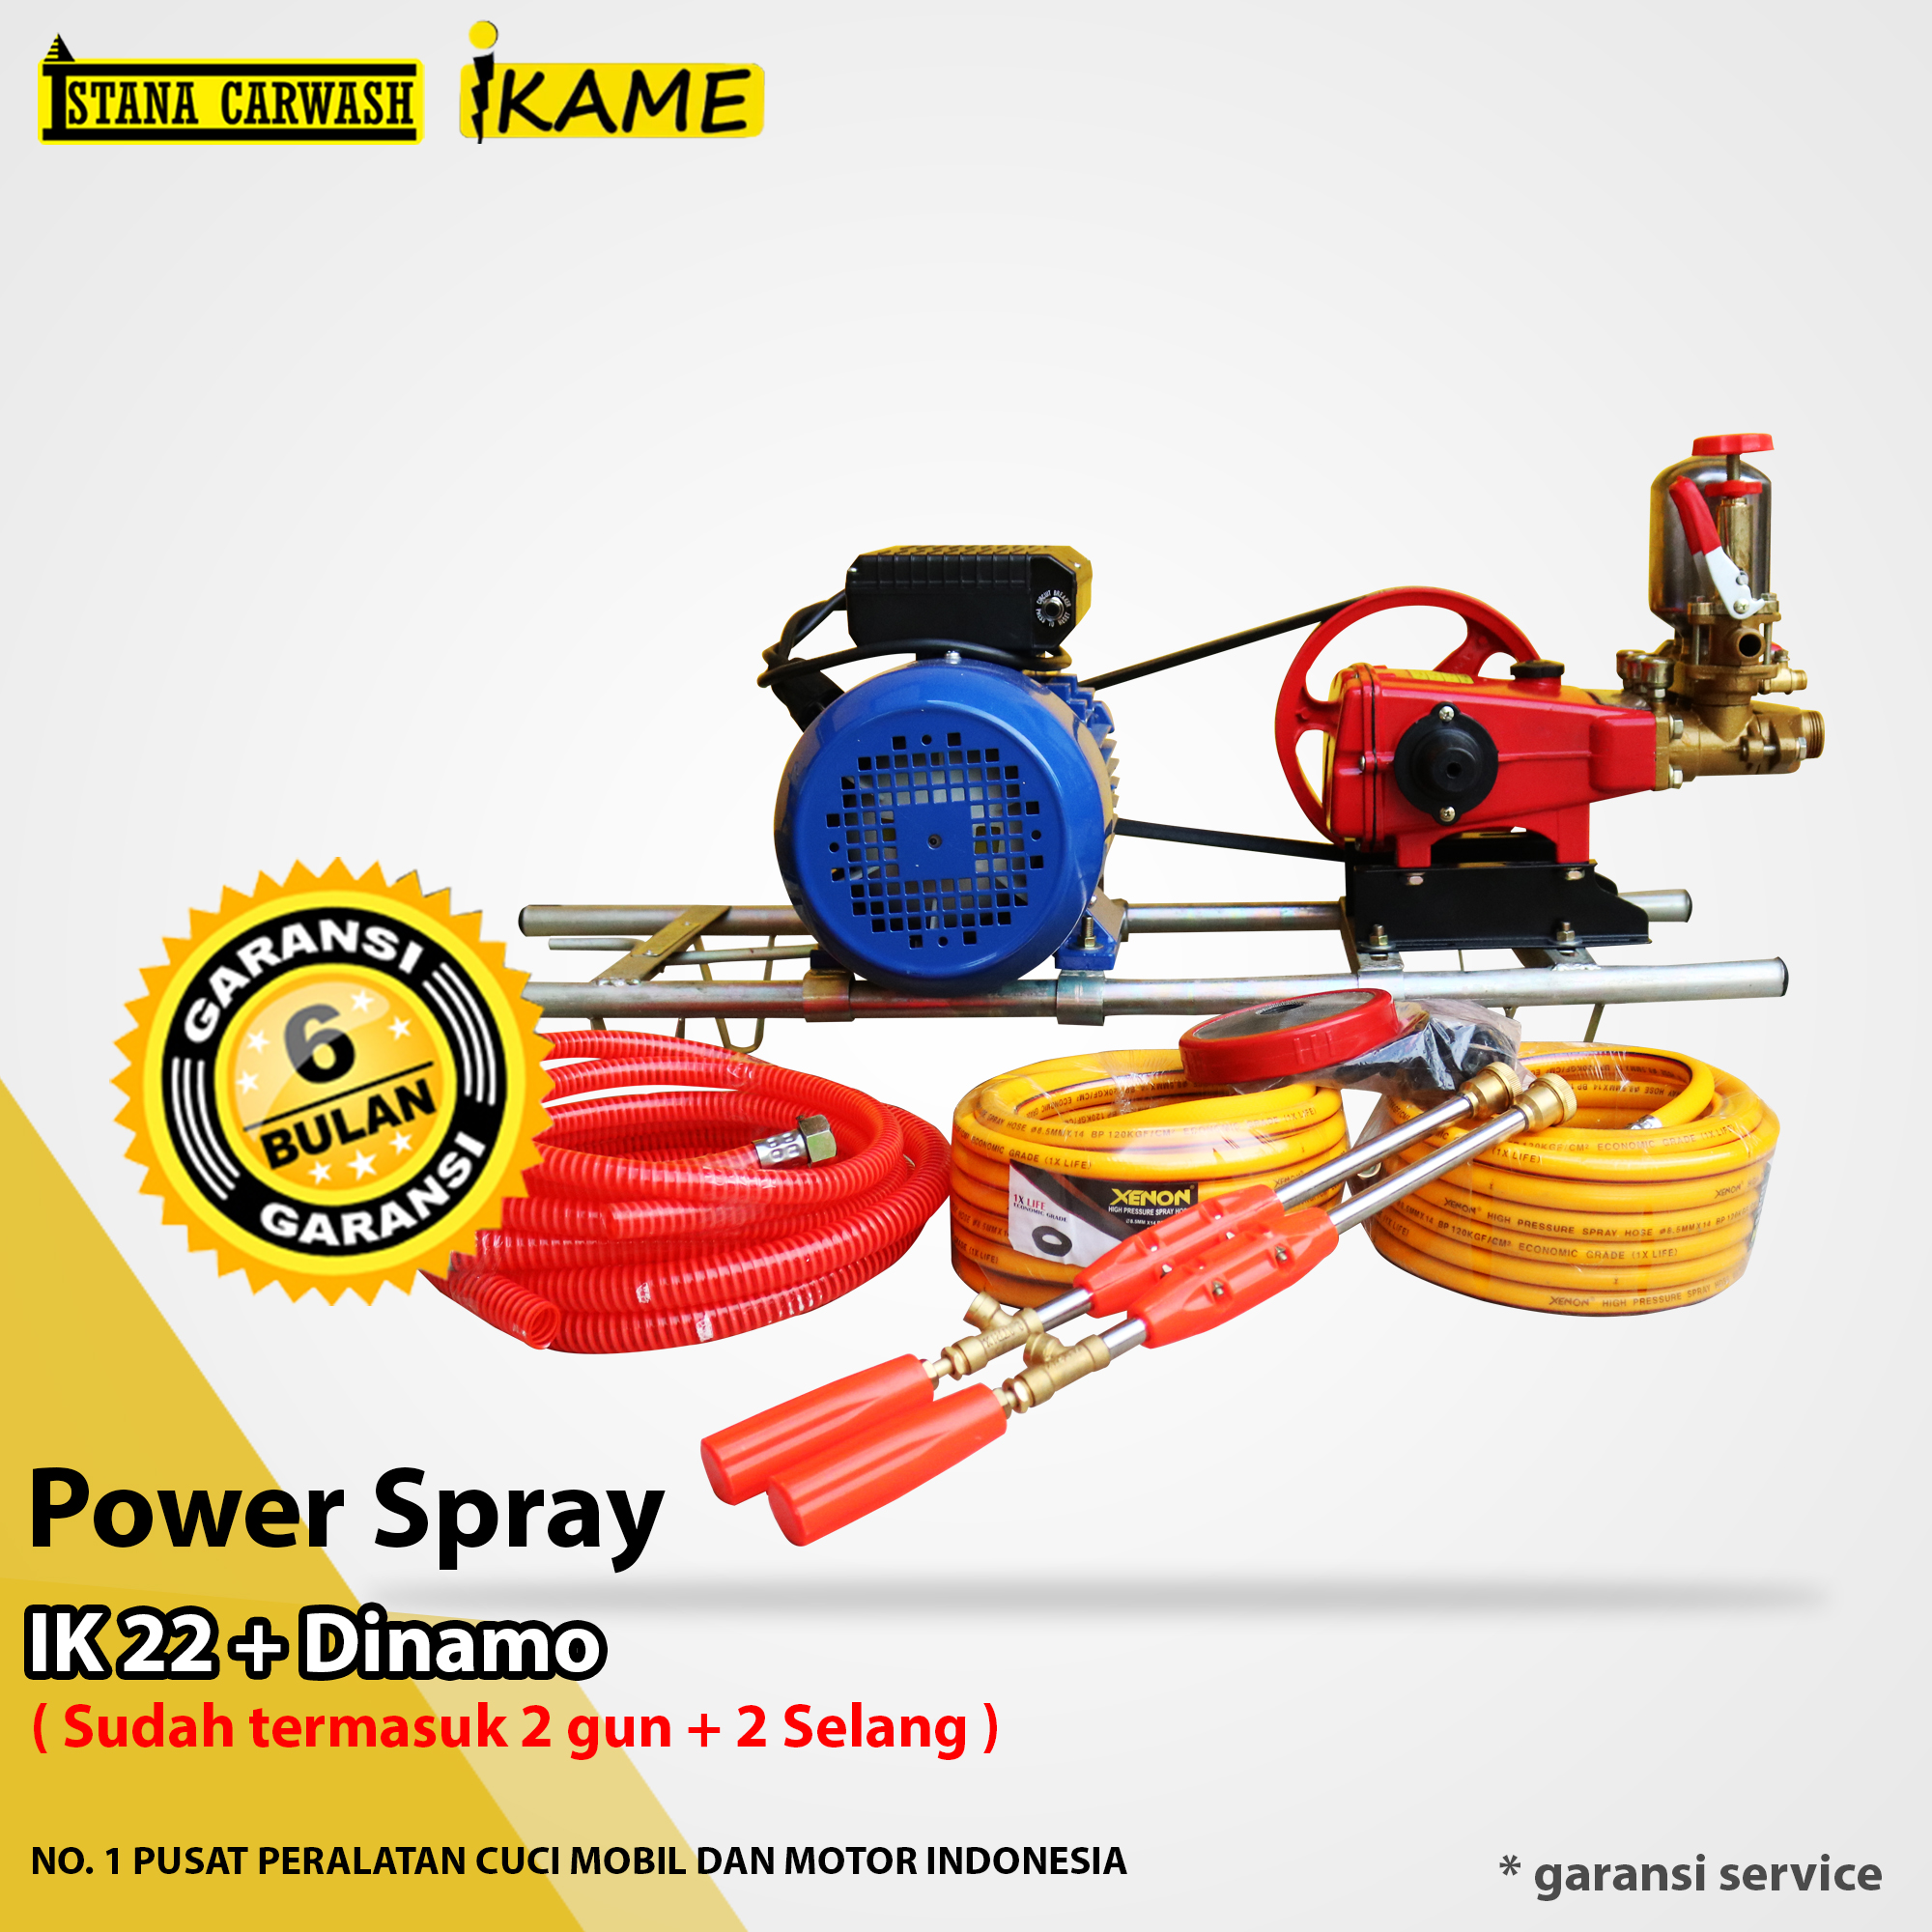 Power Spray Ikame Ik 22 + Dinamo